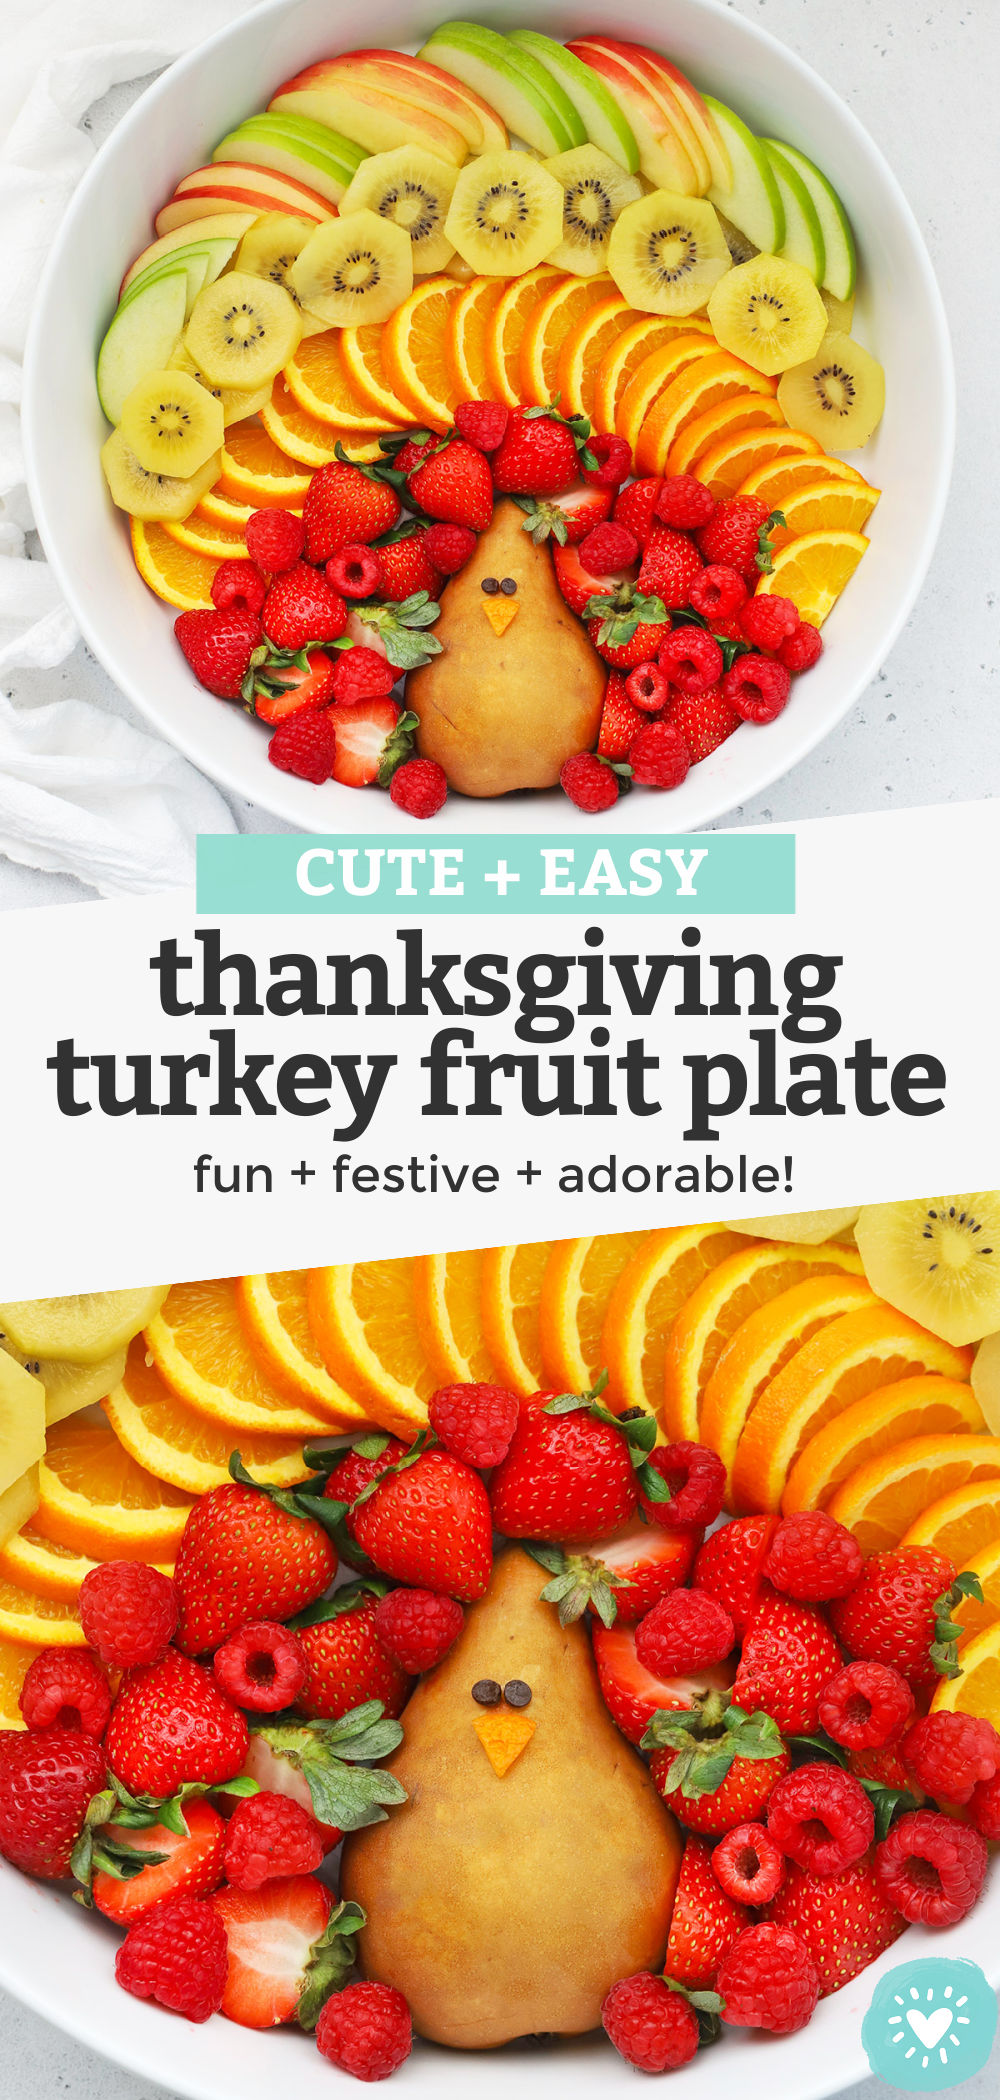 Thanksgiving Turkey Fruit Plate - This turkey-shaped Thanksgiving fruit platter looks adorable at holiday get-togethers and parties. It's a favorite with kids and grown-ups alike! (Naturally gluten-free, vegan & paleo) // Thanksgiving Appetizer // Thanksgiving Snack // Thanksgiving Fruit Platter // Turkey Fruit Platter // Fall Appetizer // #paleo #vegan #thanksgiving #appetizer #turkey #fruitplate #fruitplatter #healthysnack